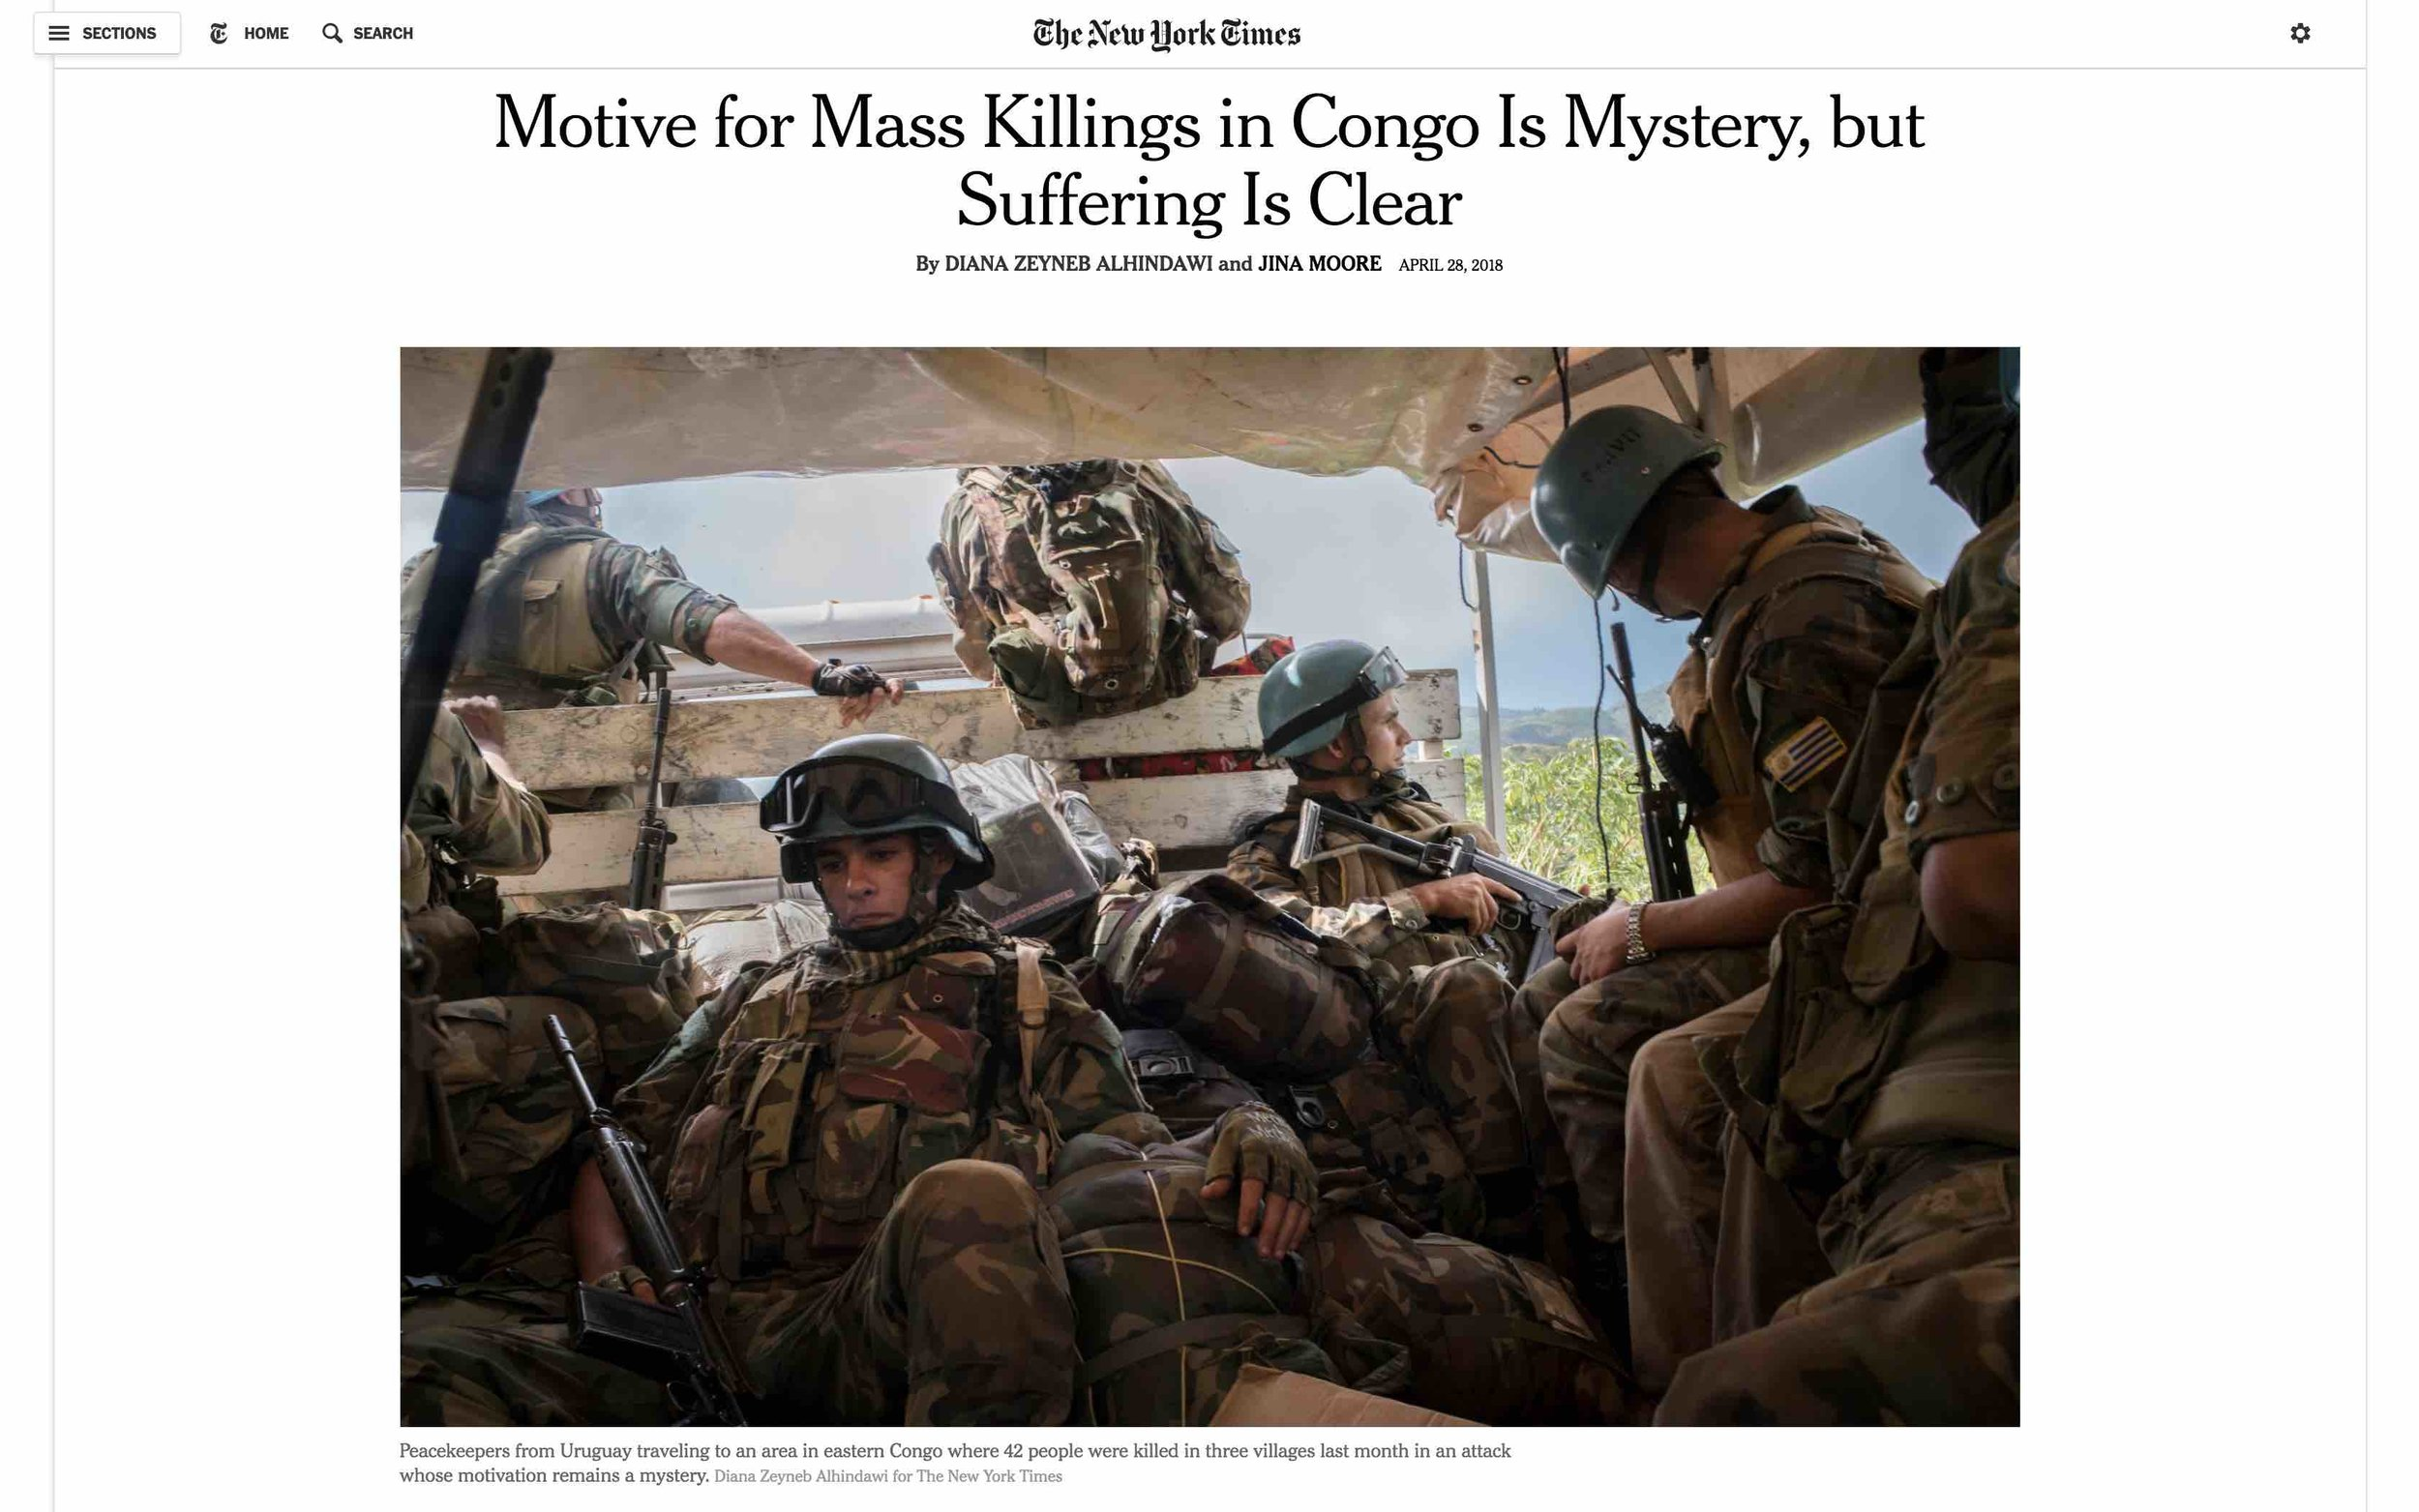 CLICK on title for full article     Motive for Mass Killings in Congo Is Mystery, but Suffering Is Clear  | The New York Times, Apr 28, 2018